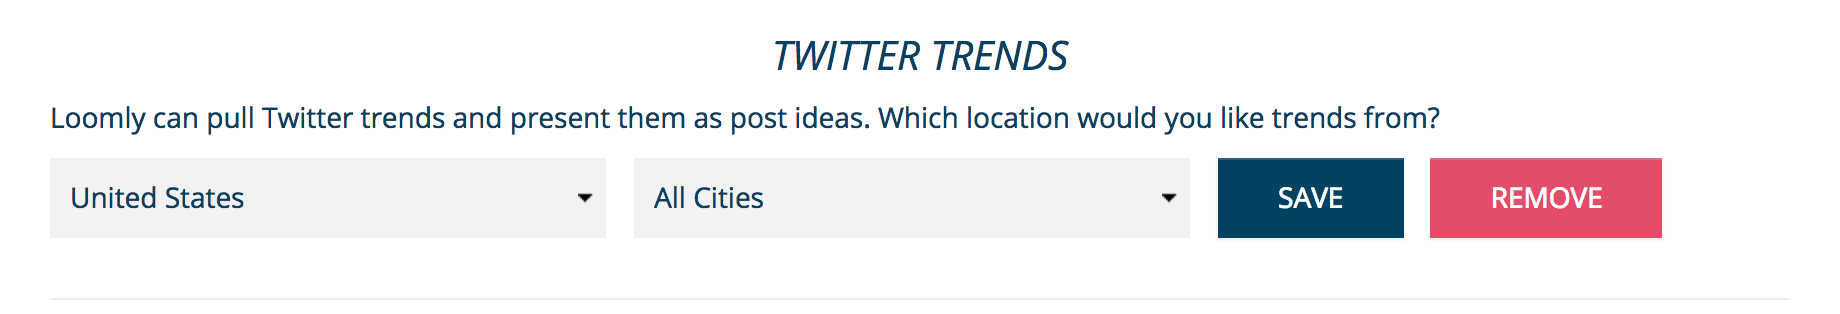 Loomly Social Media Calendar Post Ideas Twitter Trends